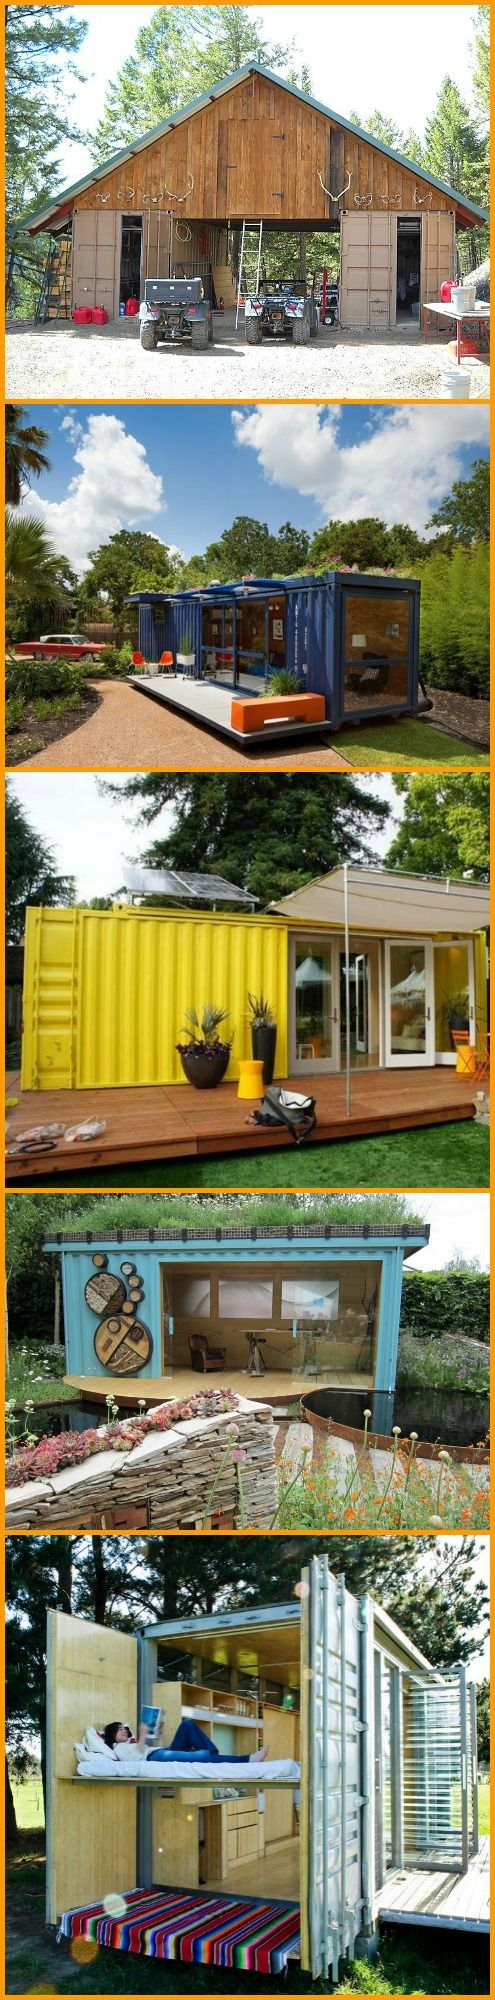 Amazing what a little imagination and effort can achieve. These converted shipping containers will show you... http://theownerbuildernetwork.co/dcw8